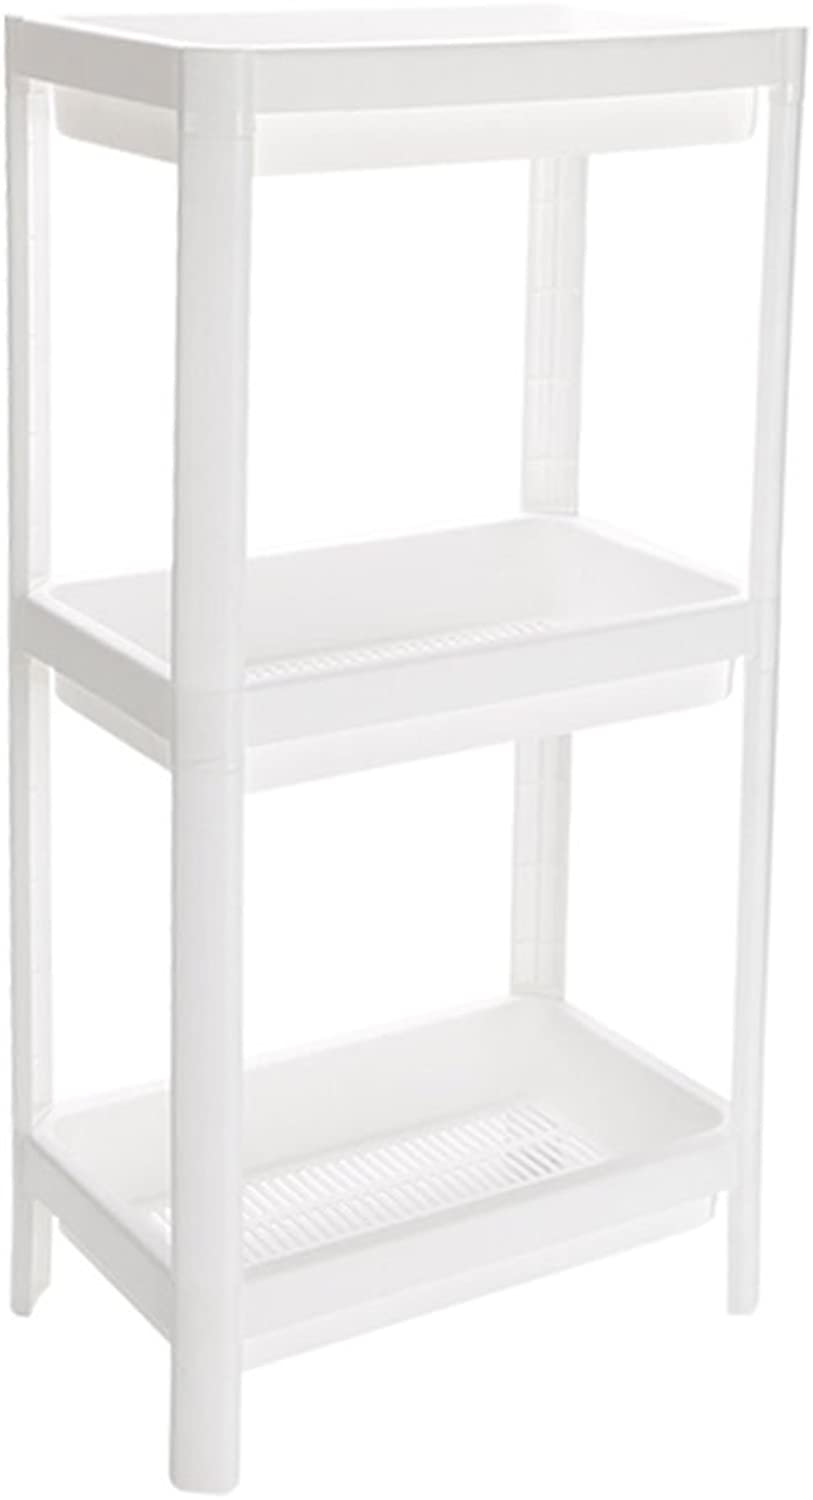 Kitchenware Racks Storage Tower 23cm Wide Kitchen Supplies Crevice Storage Rack Multilayer Bathroom Floor Storage Basket White Plastic Material Breathable (Size   3 Layers)